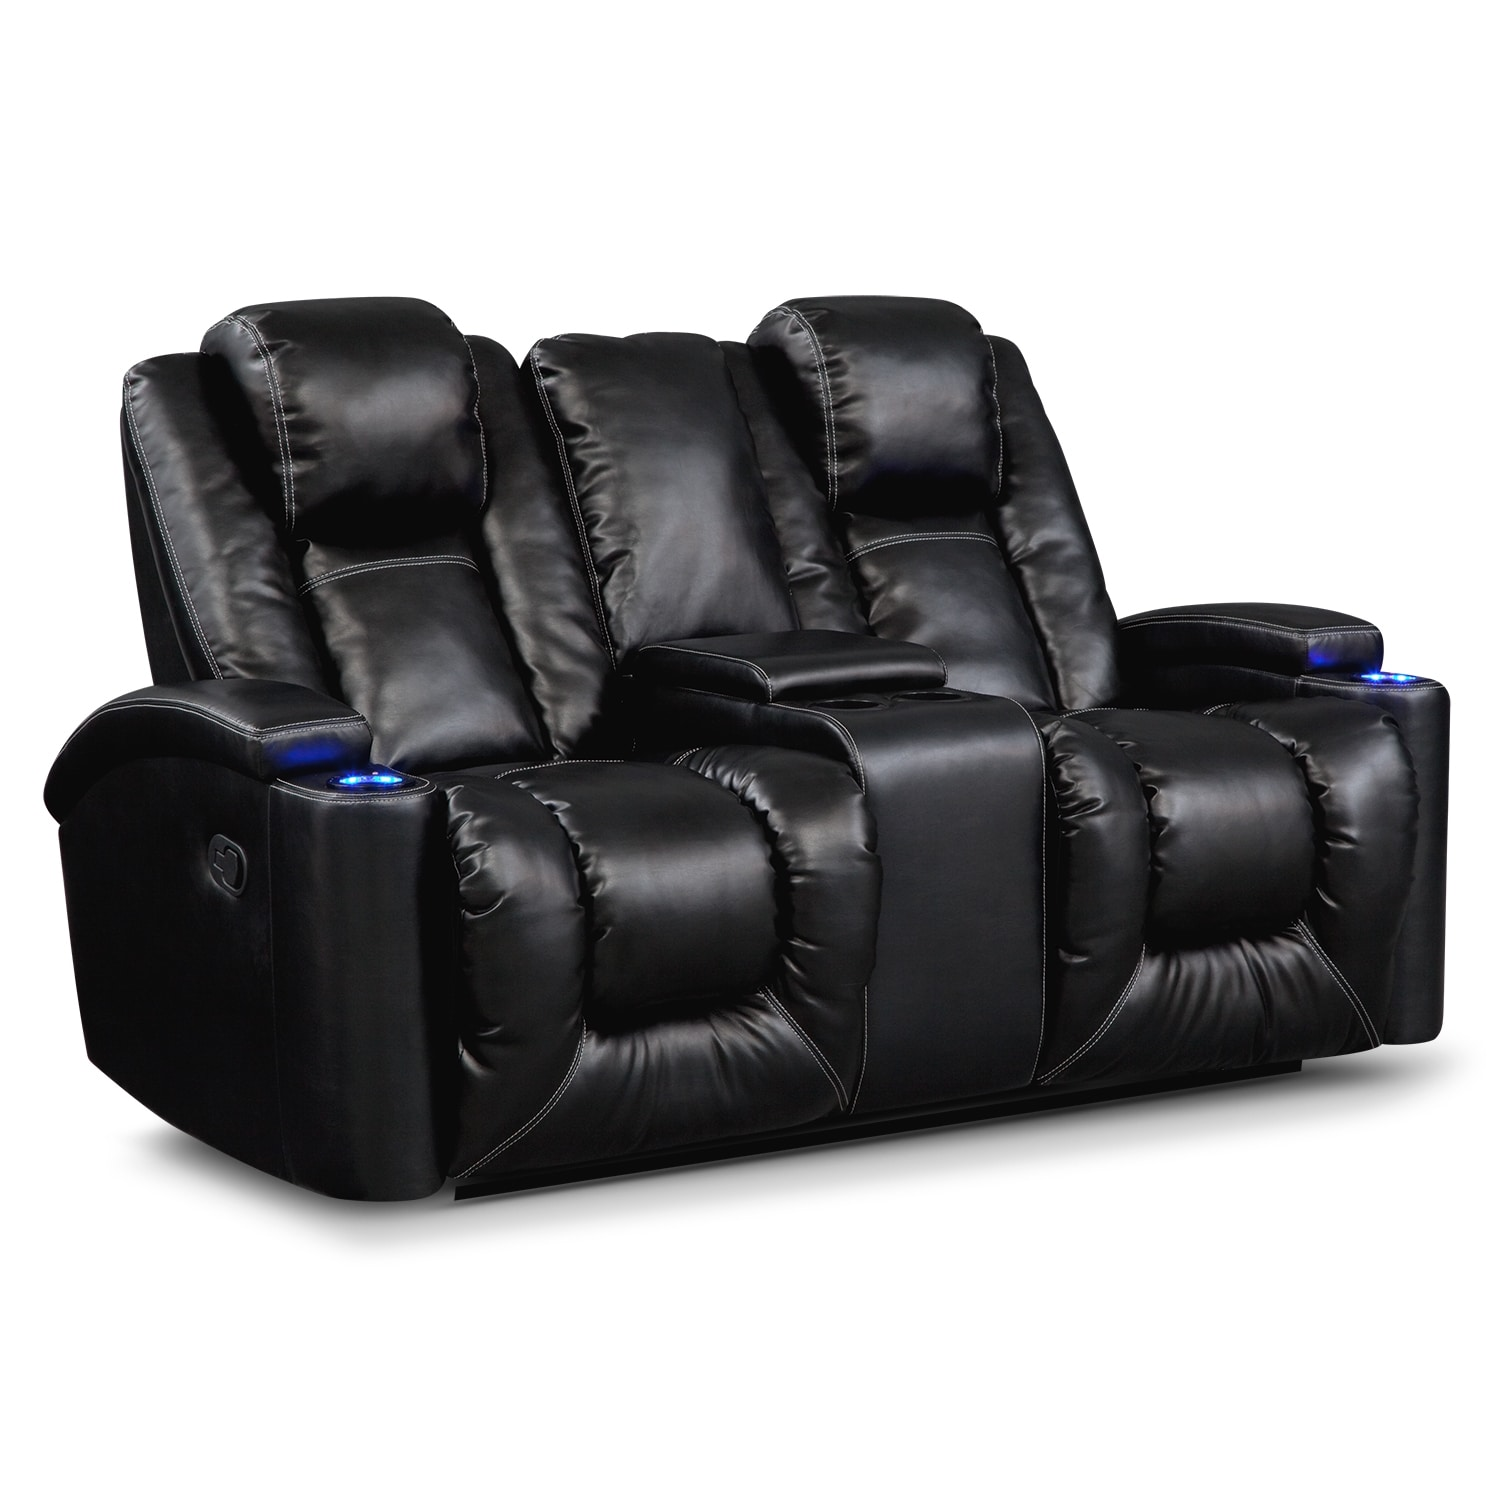 Polaris Leather Gliding Reclining Loveseat Value City Furniture